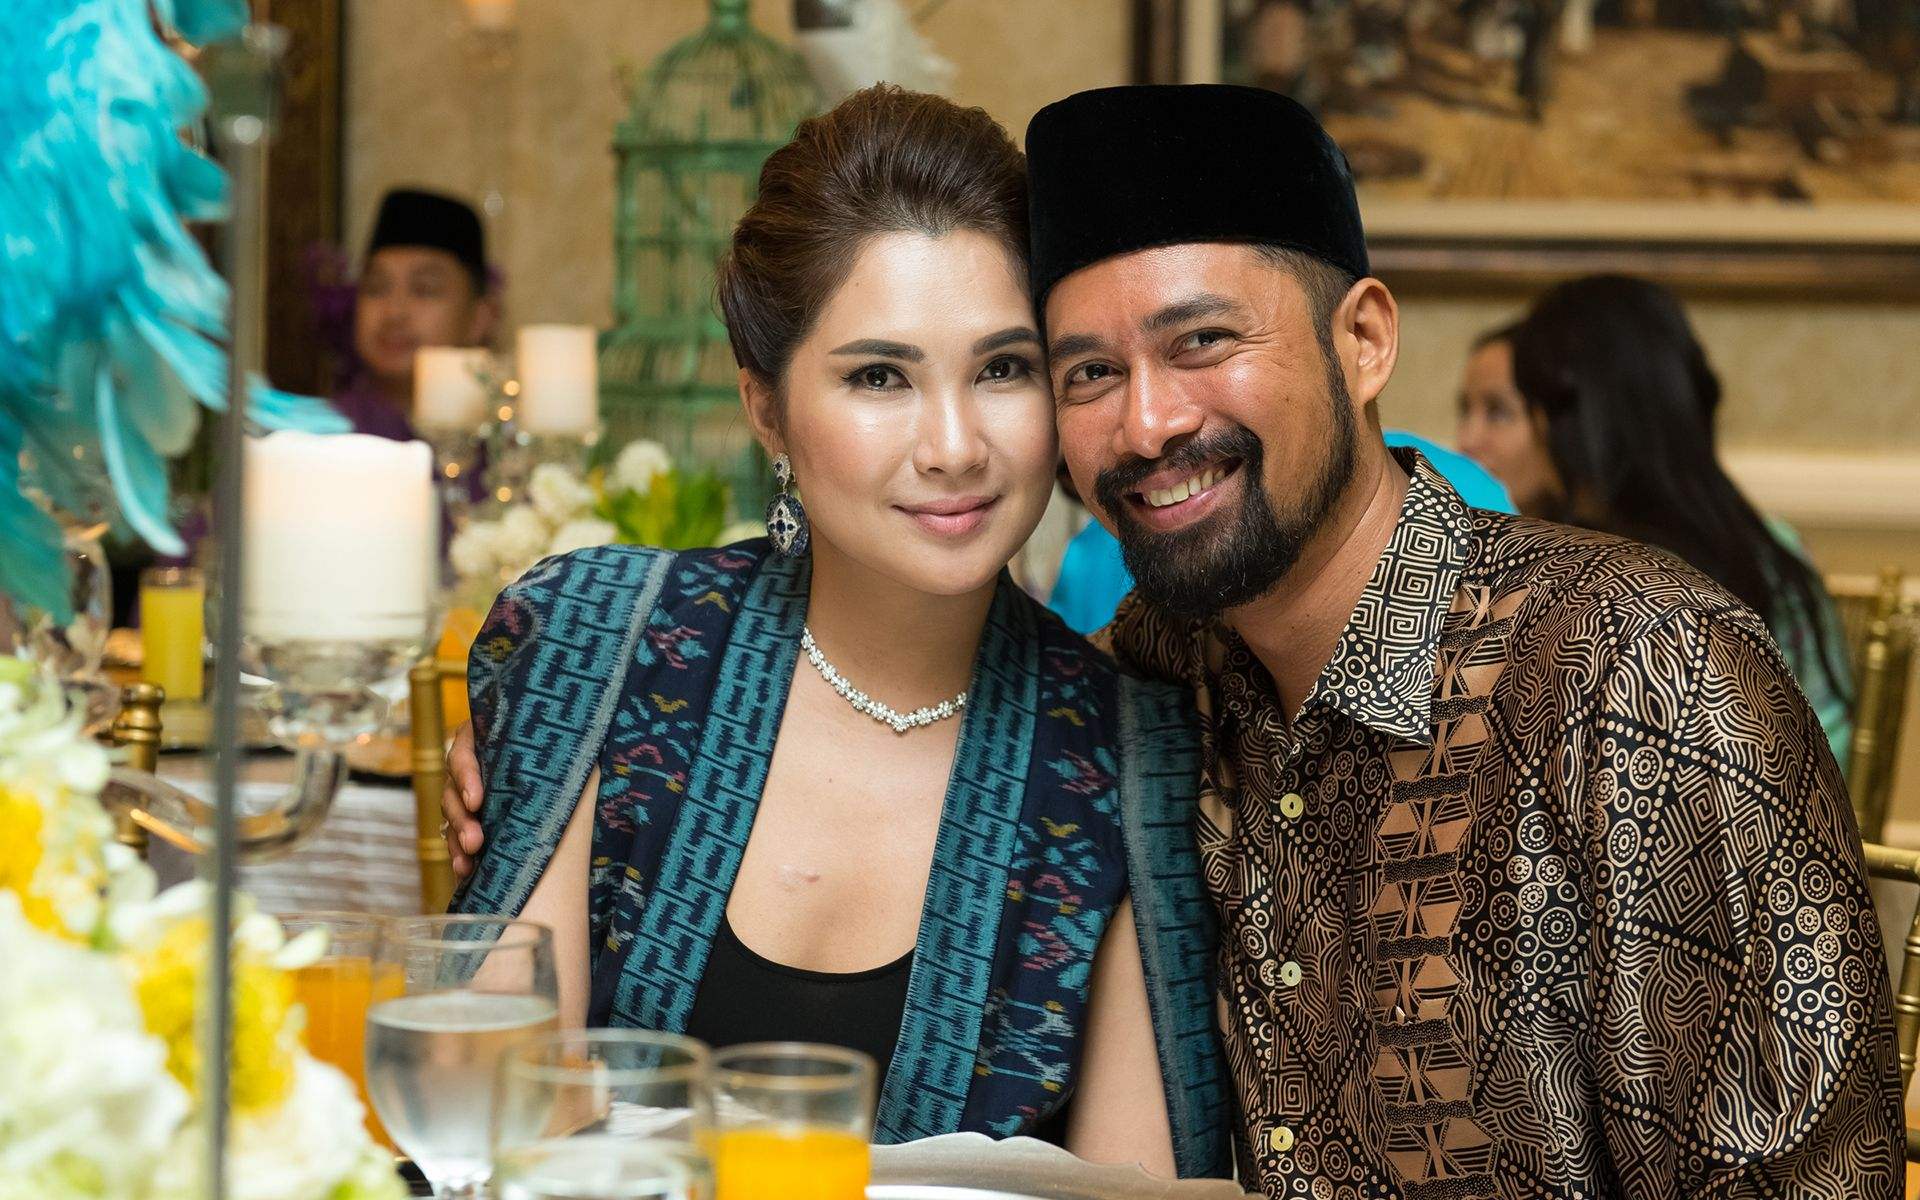 Couple Spotlight: The Love Story Of Erwin Azizi & Angela Karto That Gets Better With Age